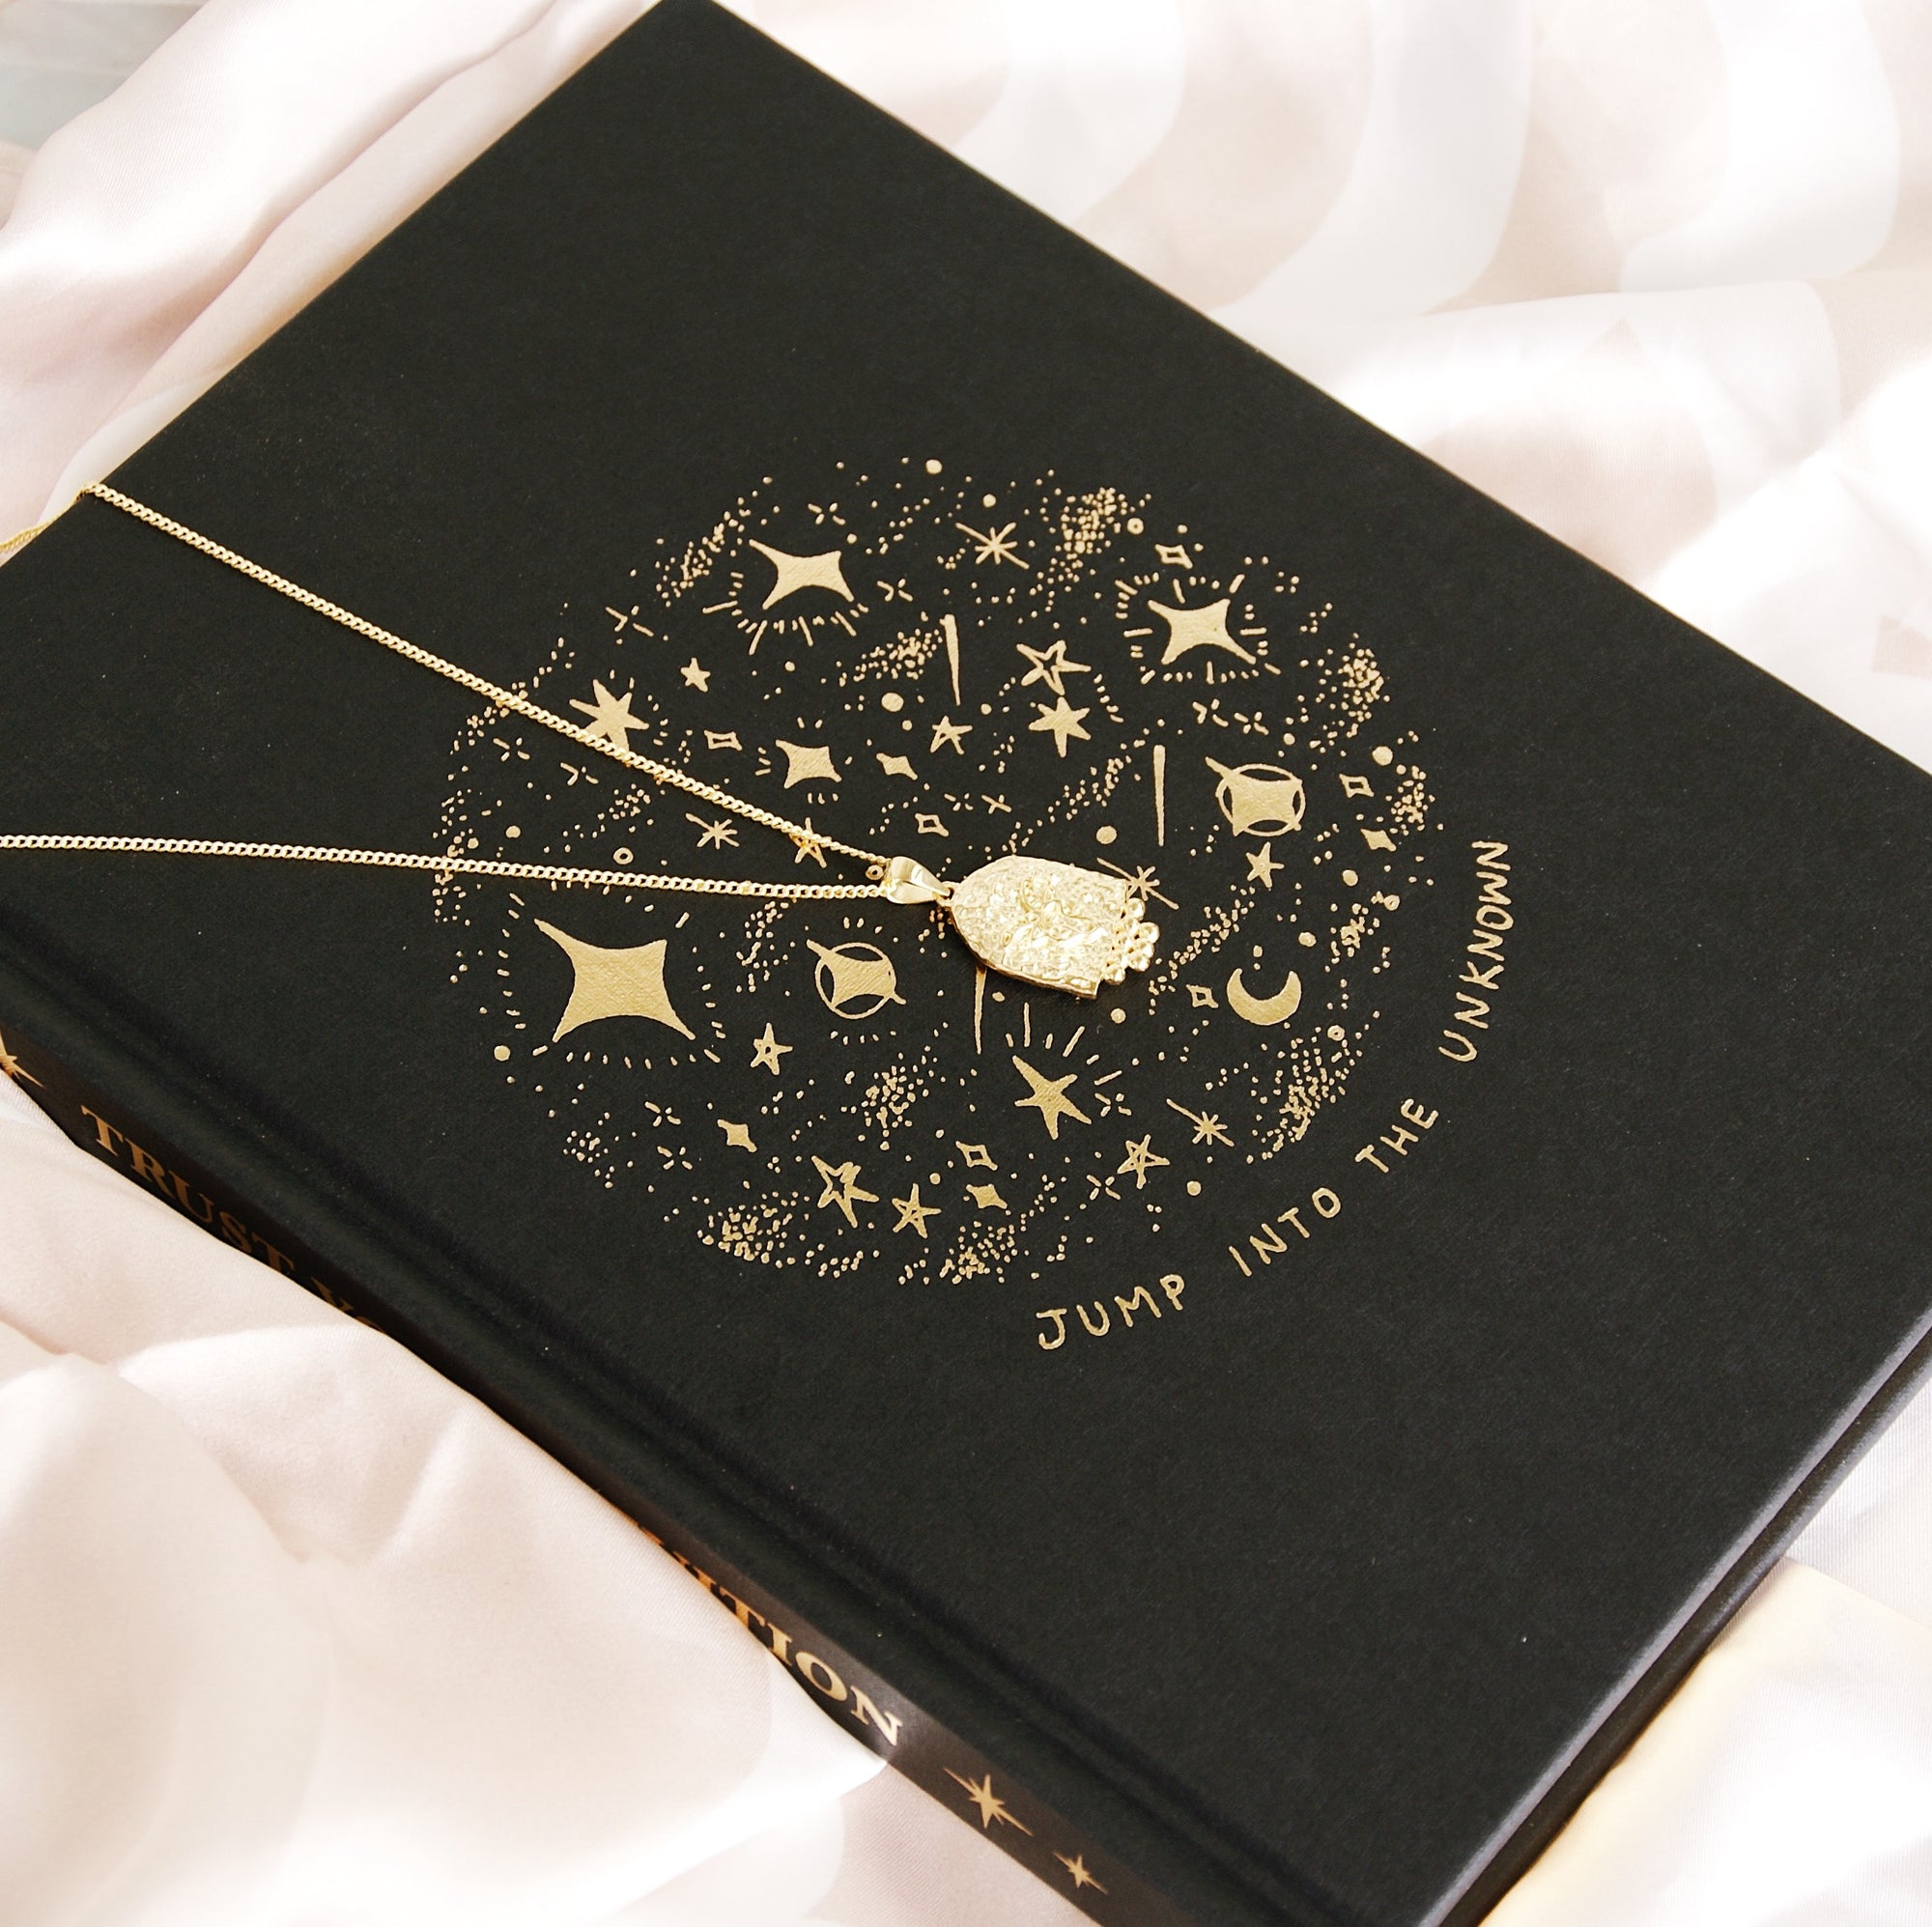 Beautiful 'Intuition' Hardcover Moon Zodiac Journal by Dreamymoons